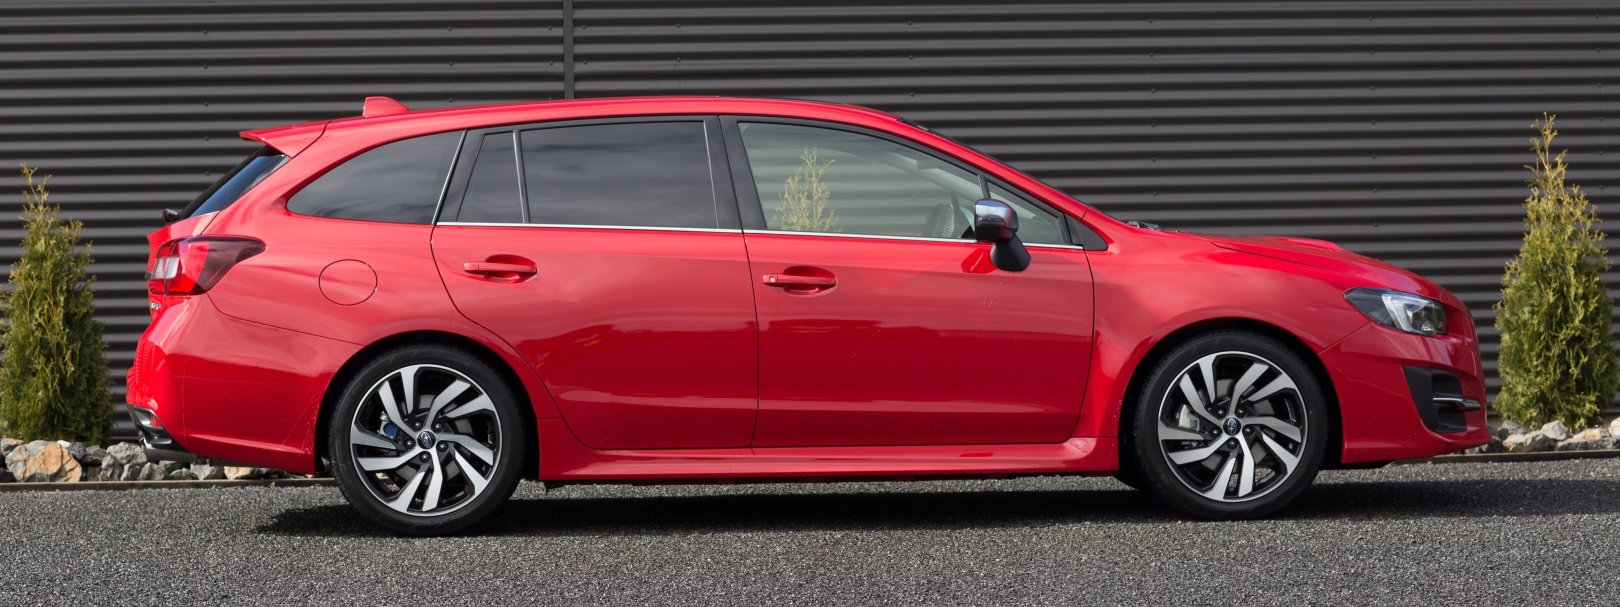 2018 Subaru Levorg side view